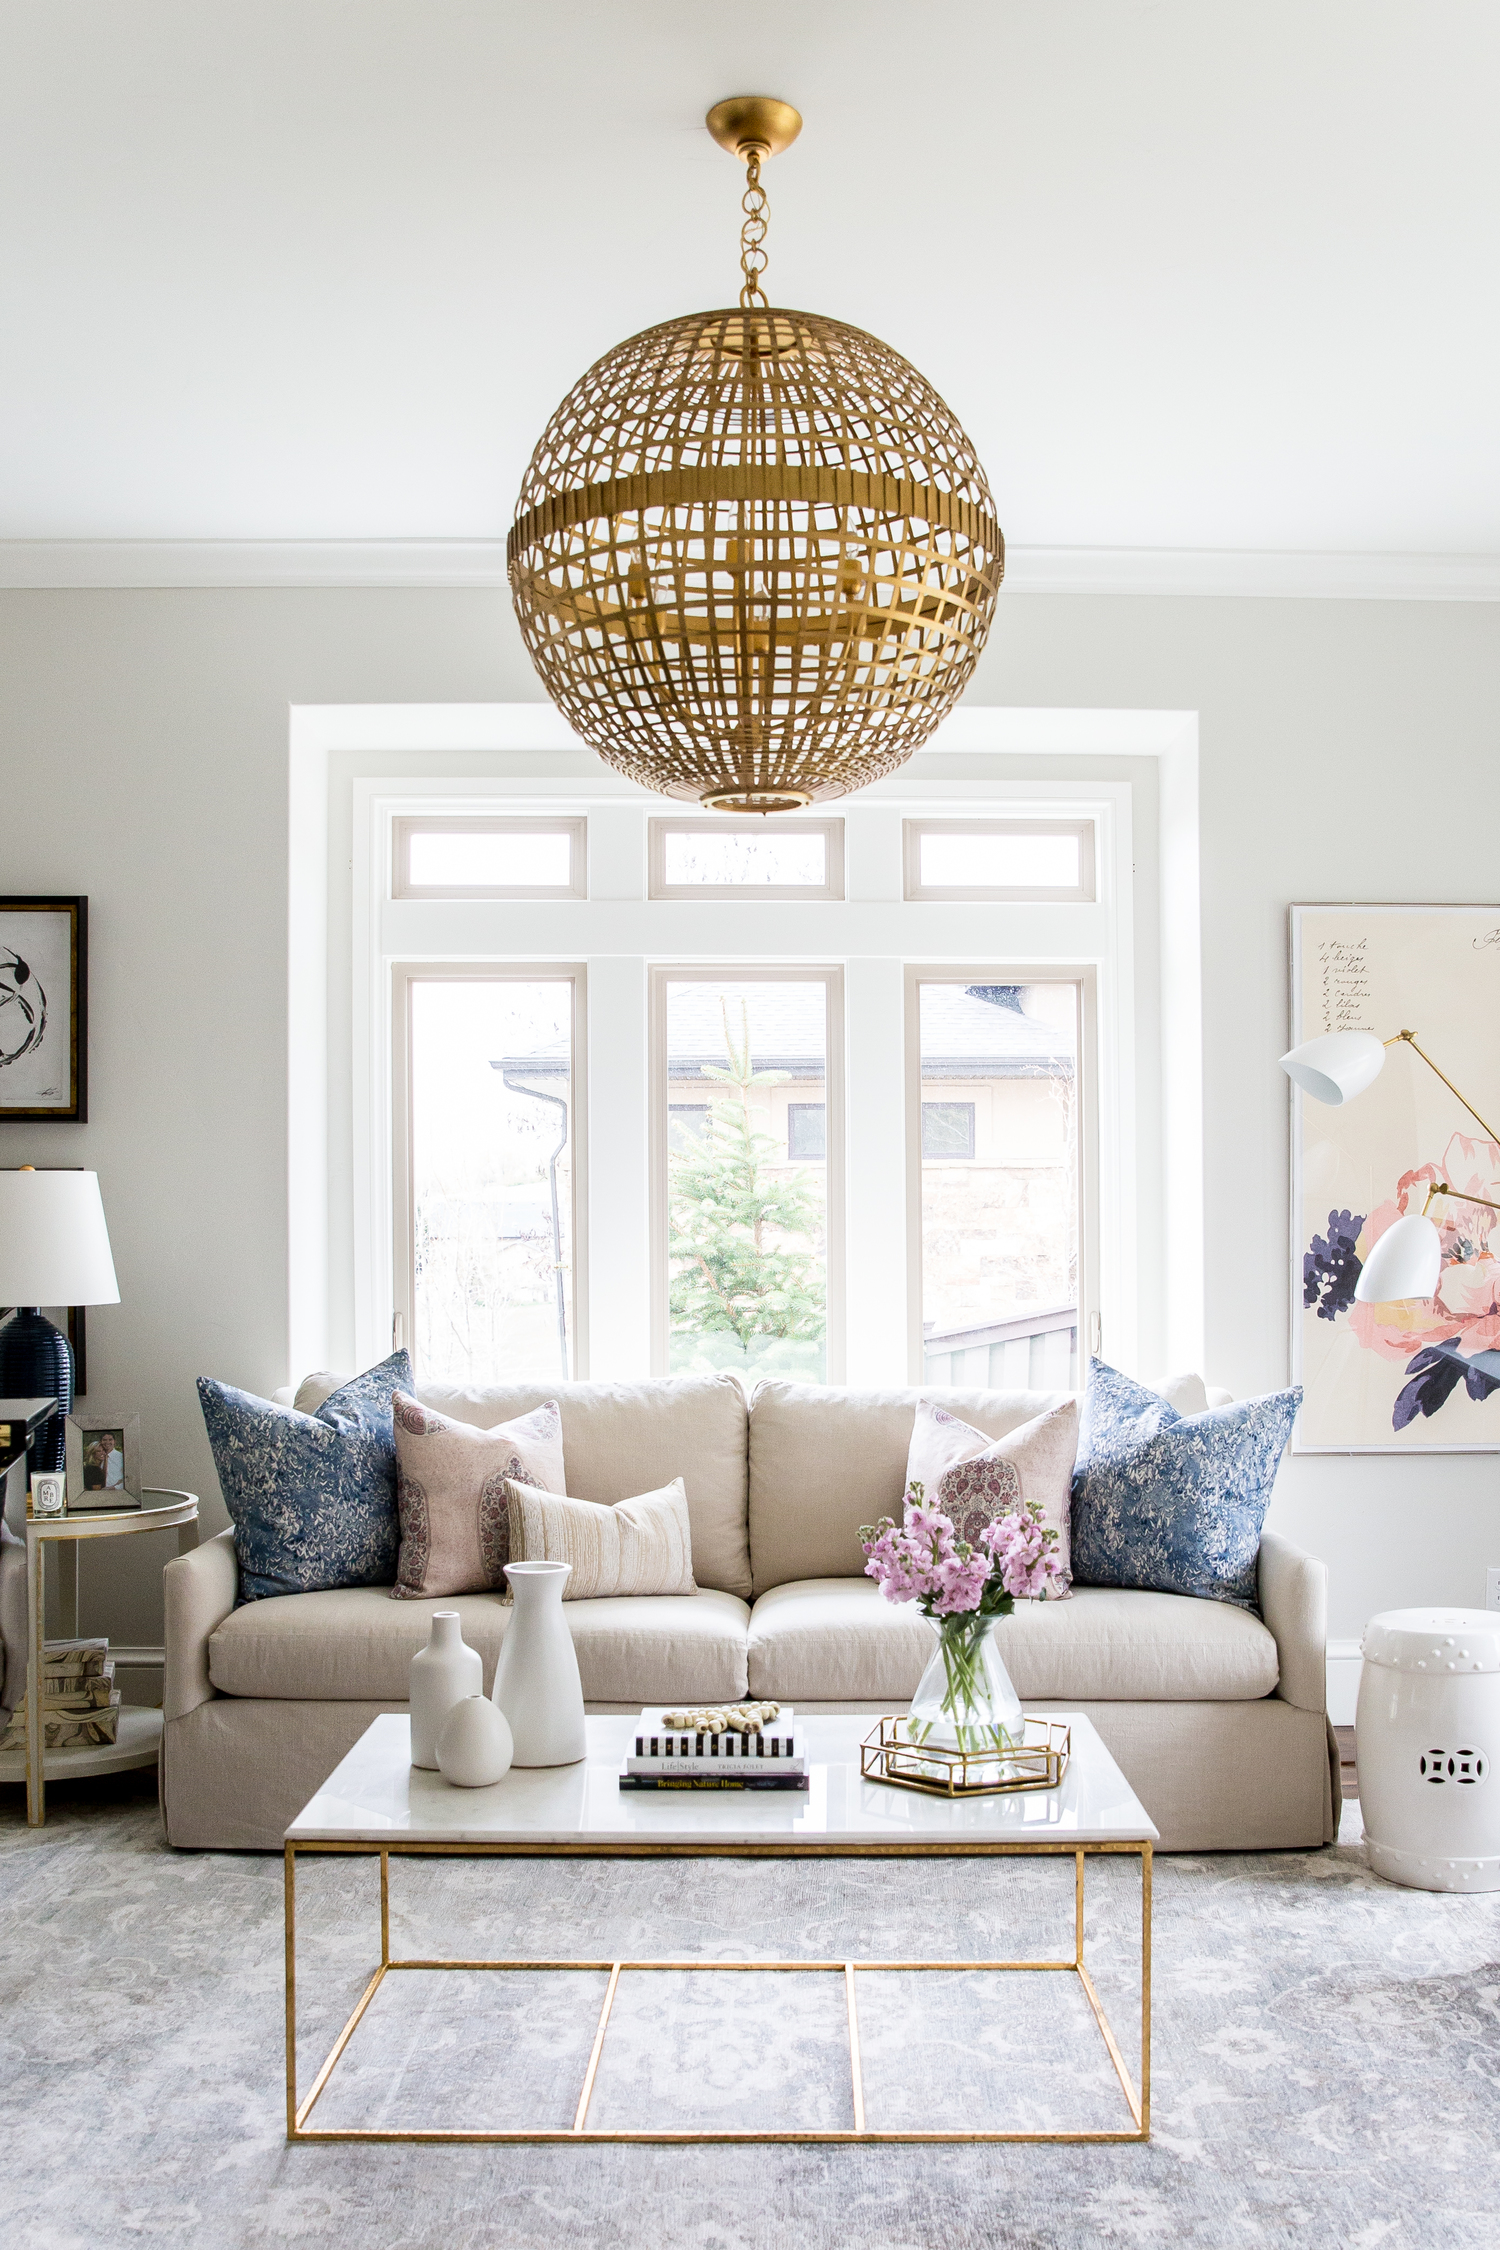 Tan statement sofa in front of large windows